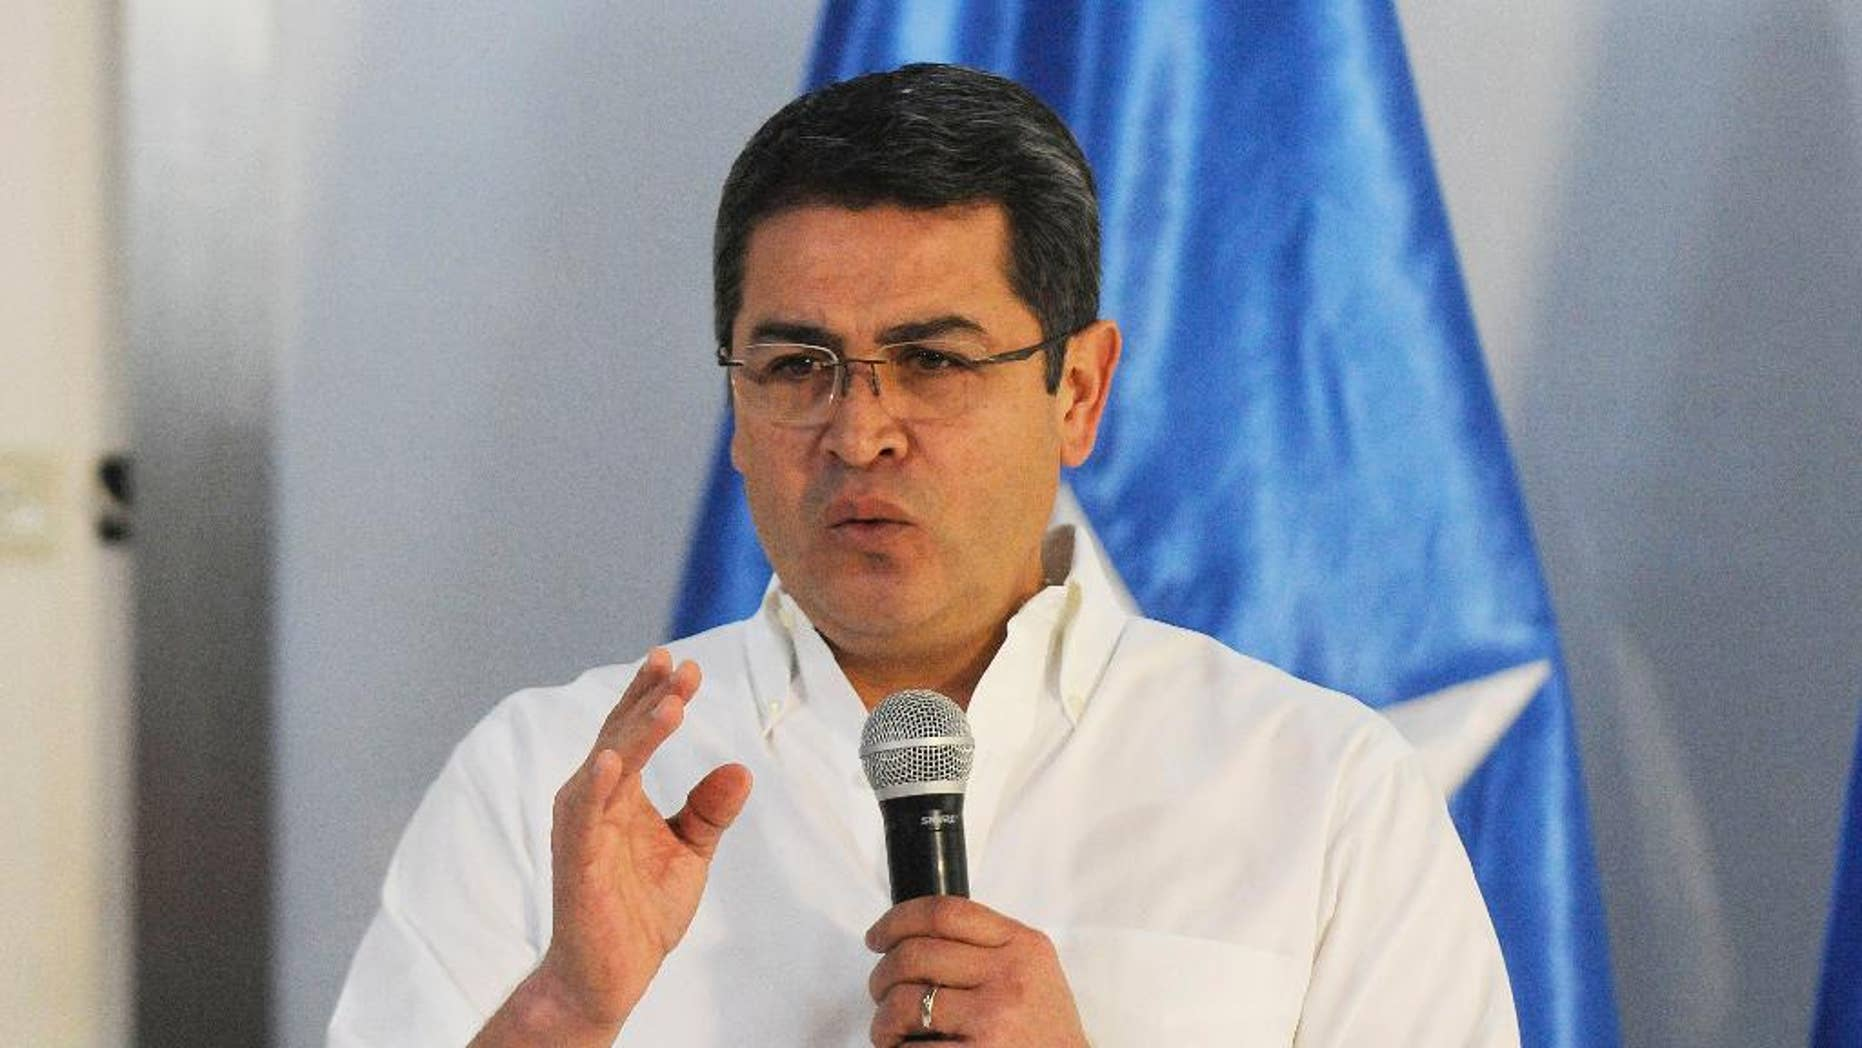 The President of Honduras, Juan Orlando Hernandez talks during a press conference where he announced his intention to run for another term, in Tegucigalpa, Honduras, Wednesday Nov. 9, 2016. Hernandez has announced his intention to run for another term, a year after a controversial Supreme Court ruling voided a longtime constitutional ban on presidential re-election. (AP Photo/Fernando Antonio)